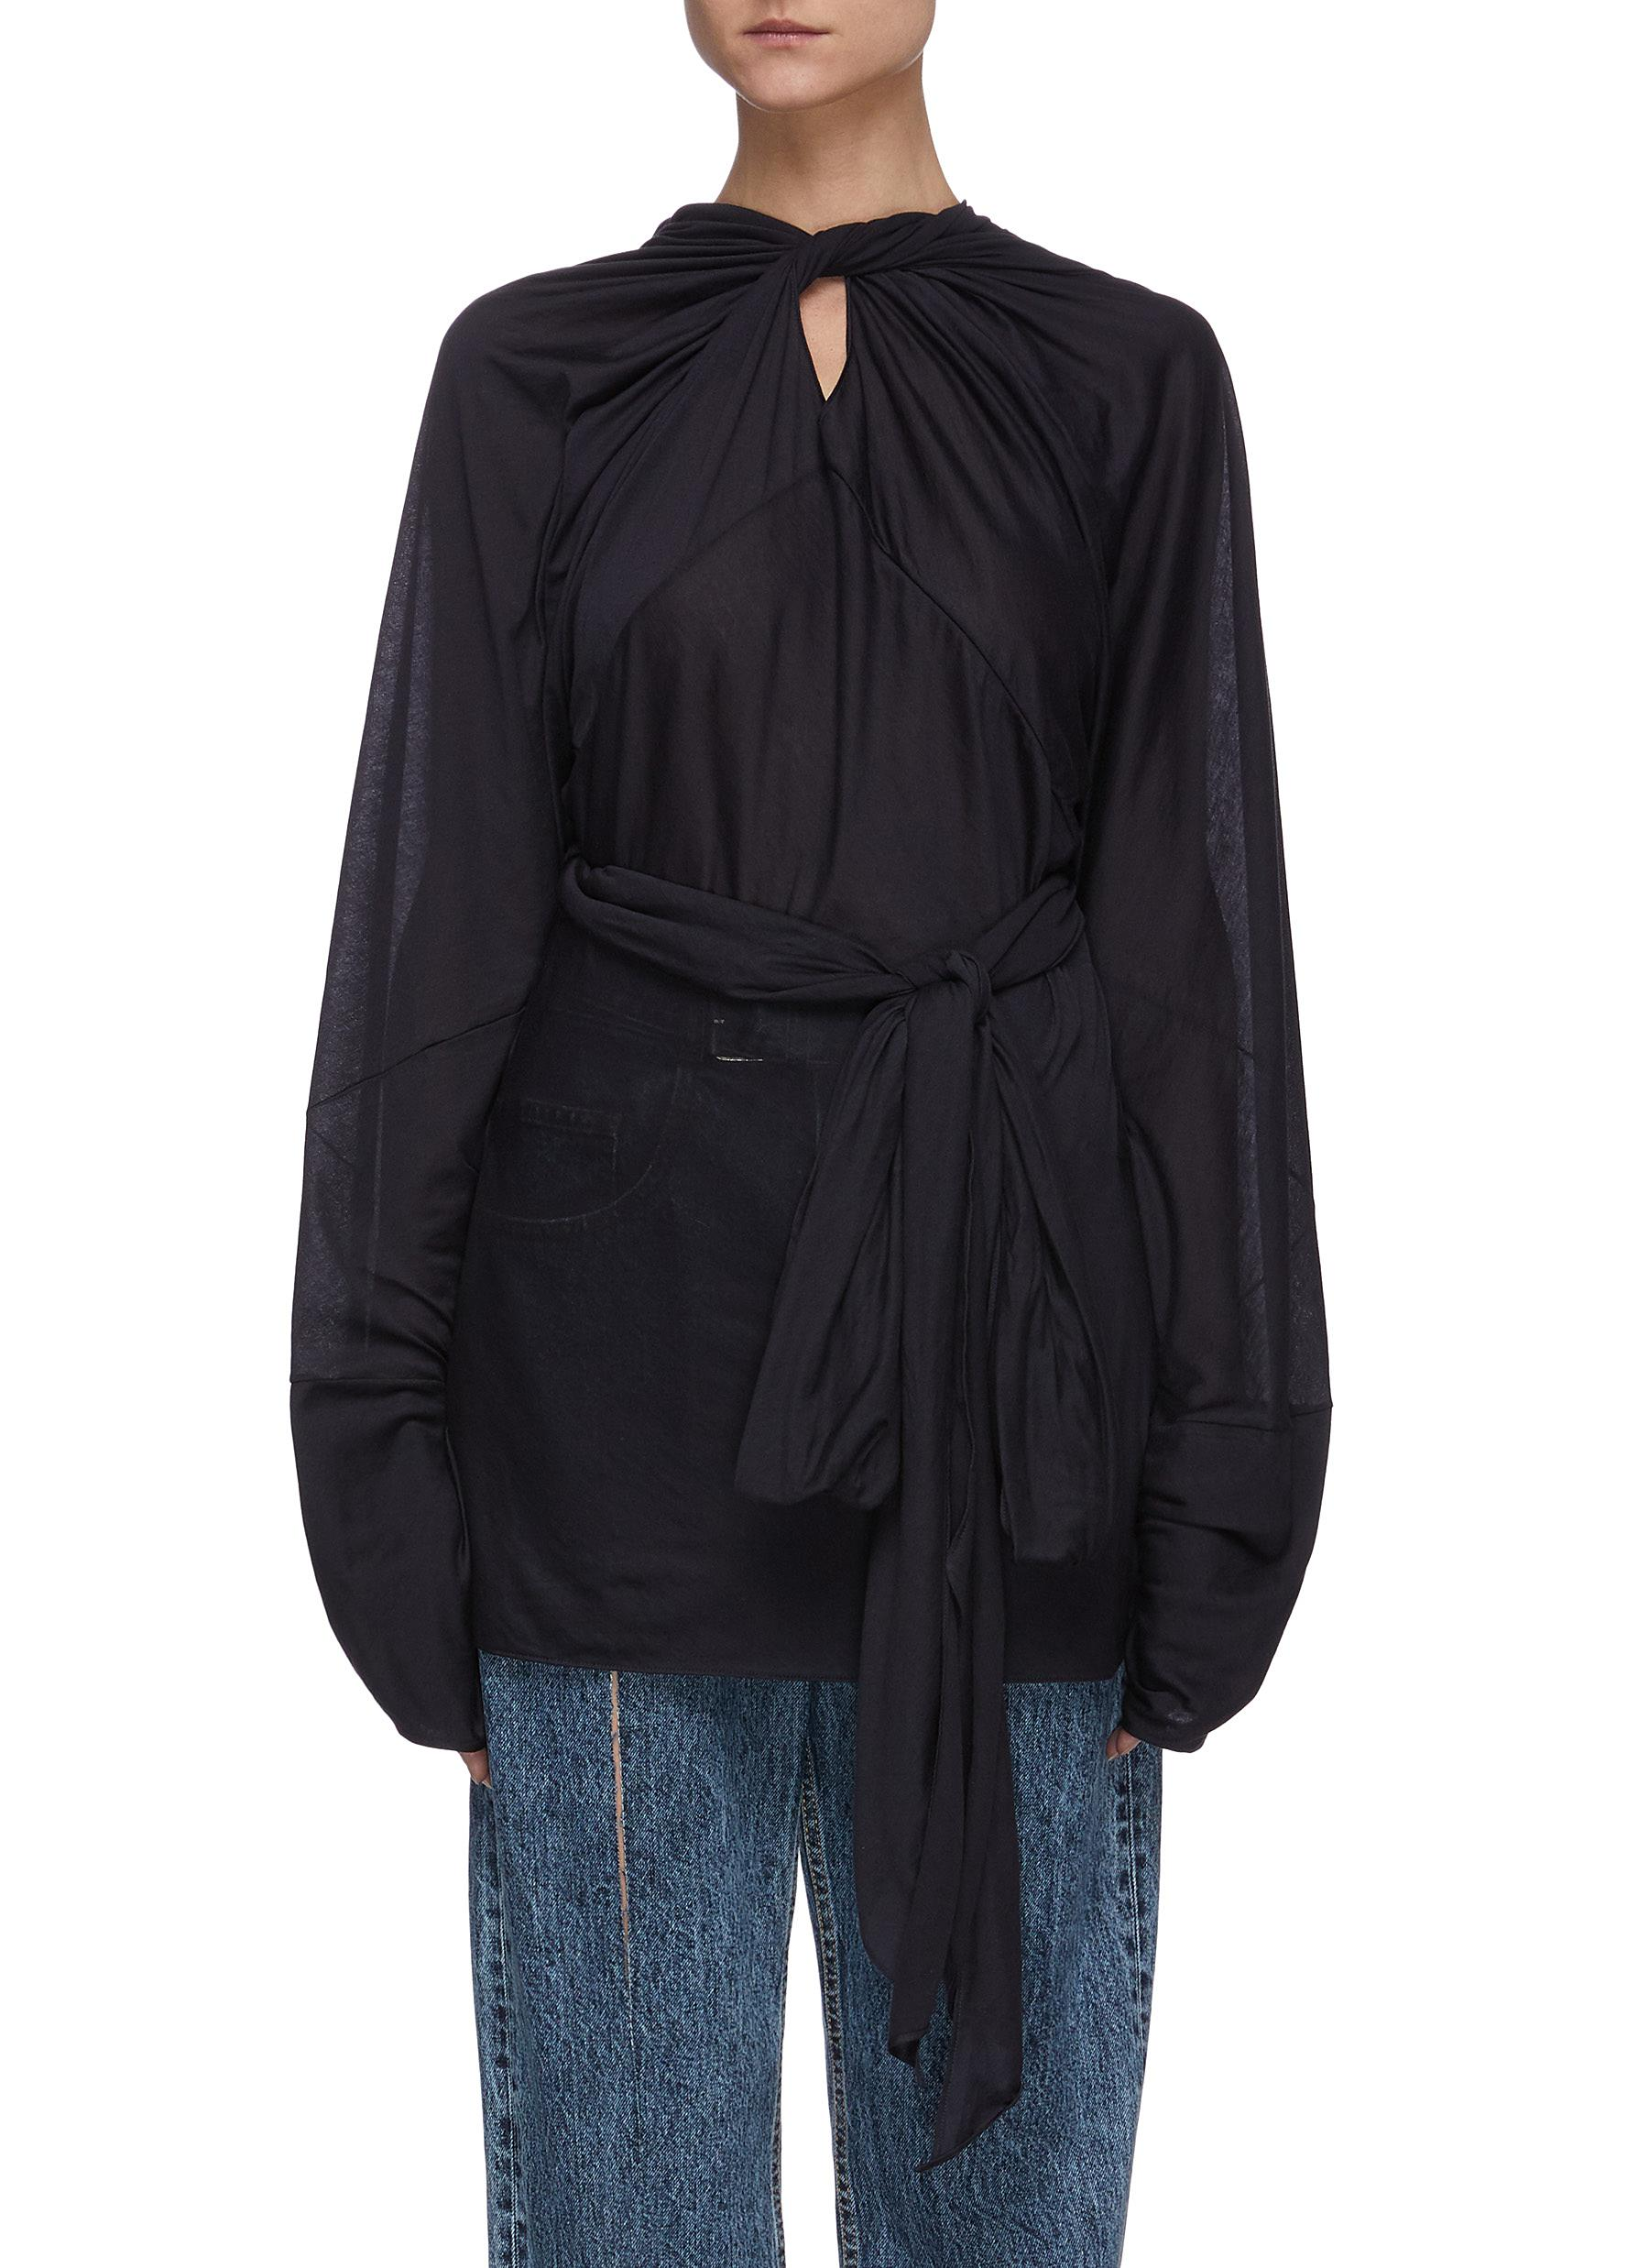 Buy Maison Margiela Tops Cotton silk jersey draped top